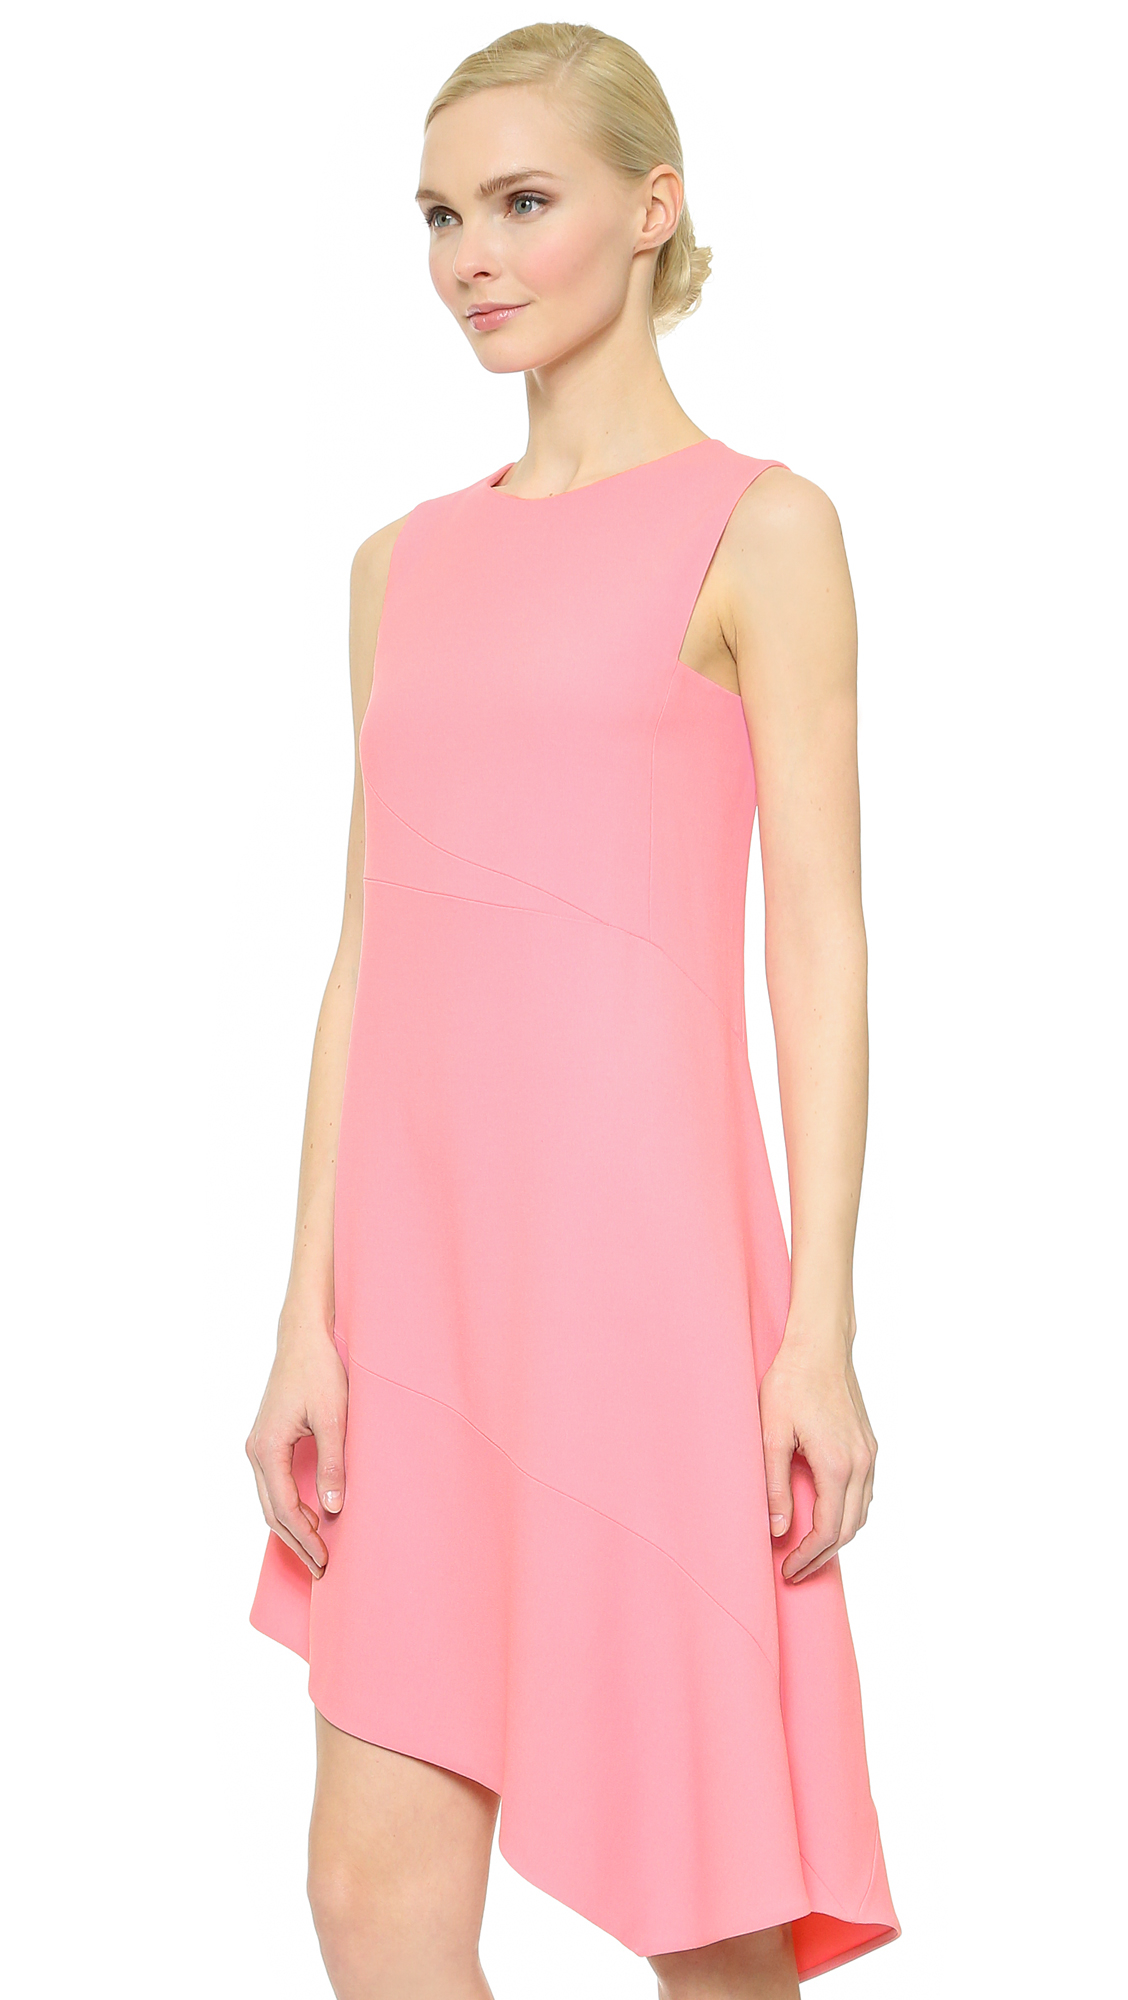 Narciso rodriguez Sleeveless Dress - Pink in Pink - Lyst